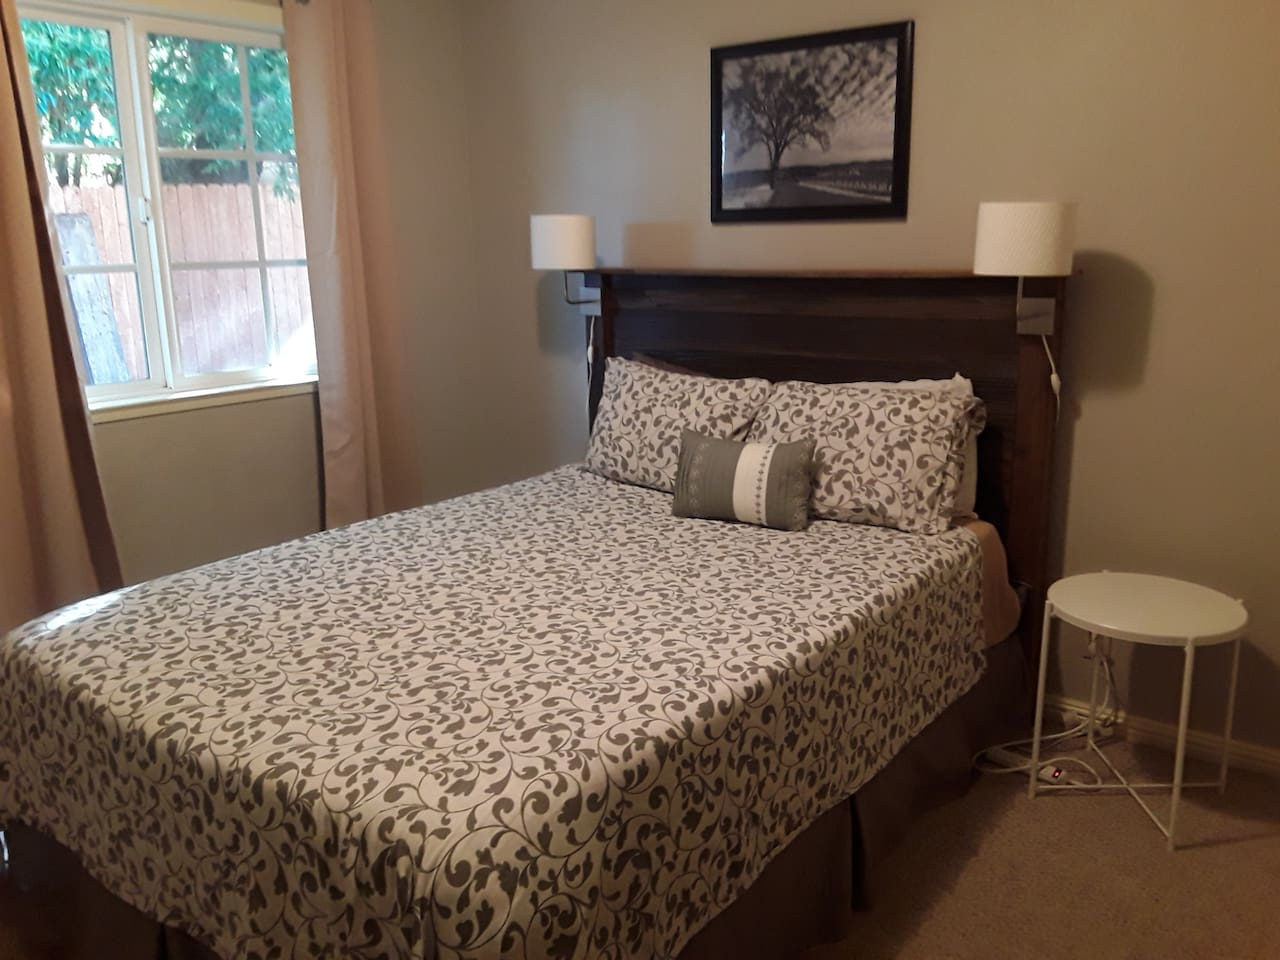 Comfortable bed with black-out curtains. Reclaimed cedar headboard. Full closet and dresser. Plenty of storage.